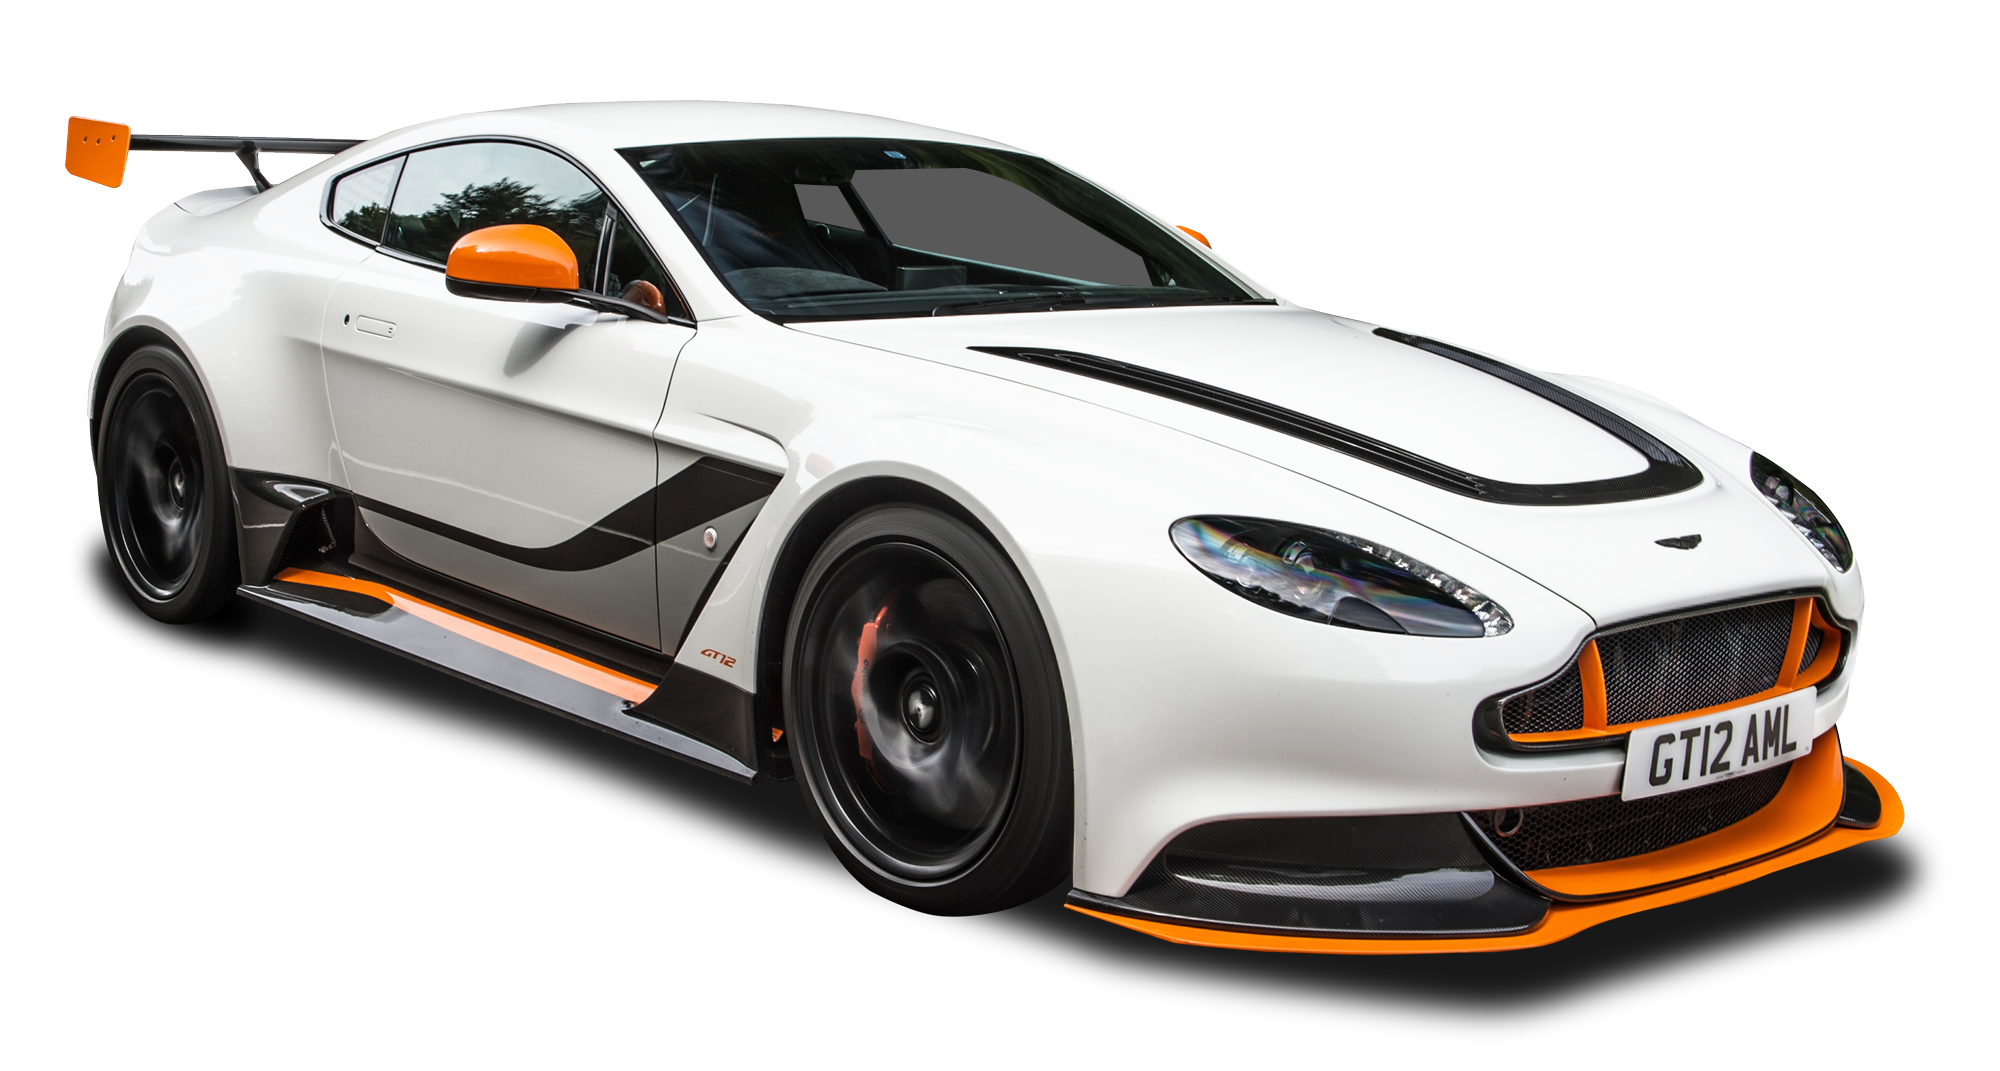 Car clipart transparent background clipart download Aston Martin cars PNG images free download clipart download